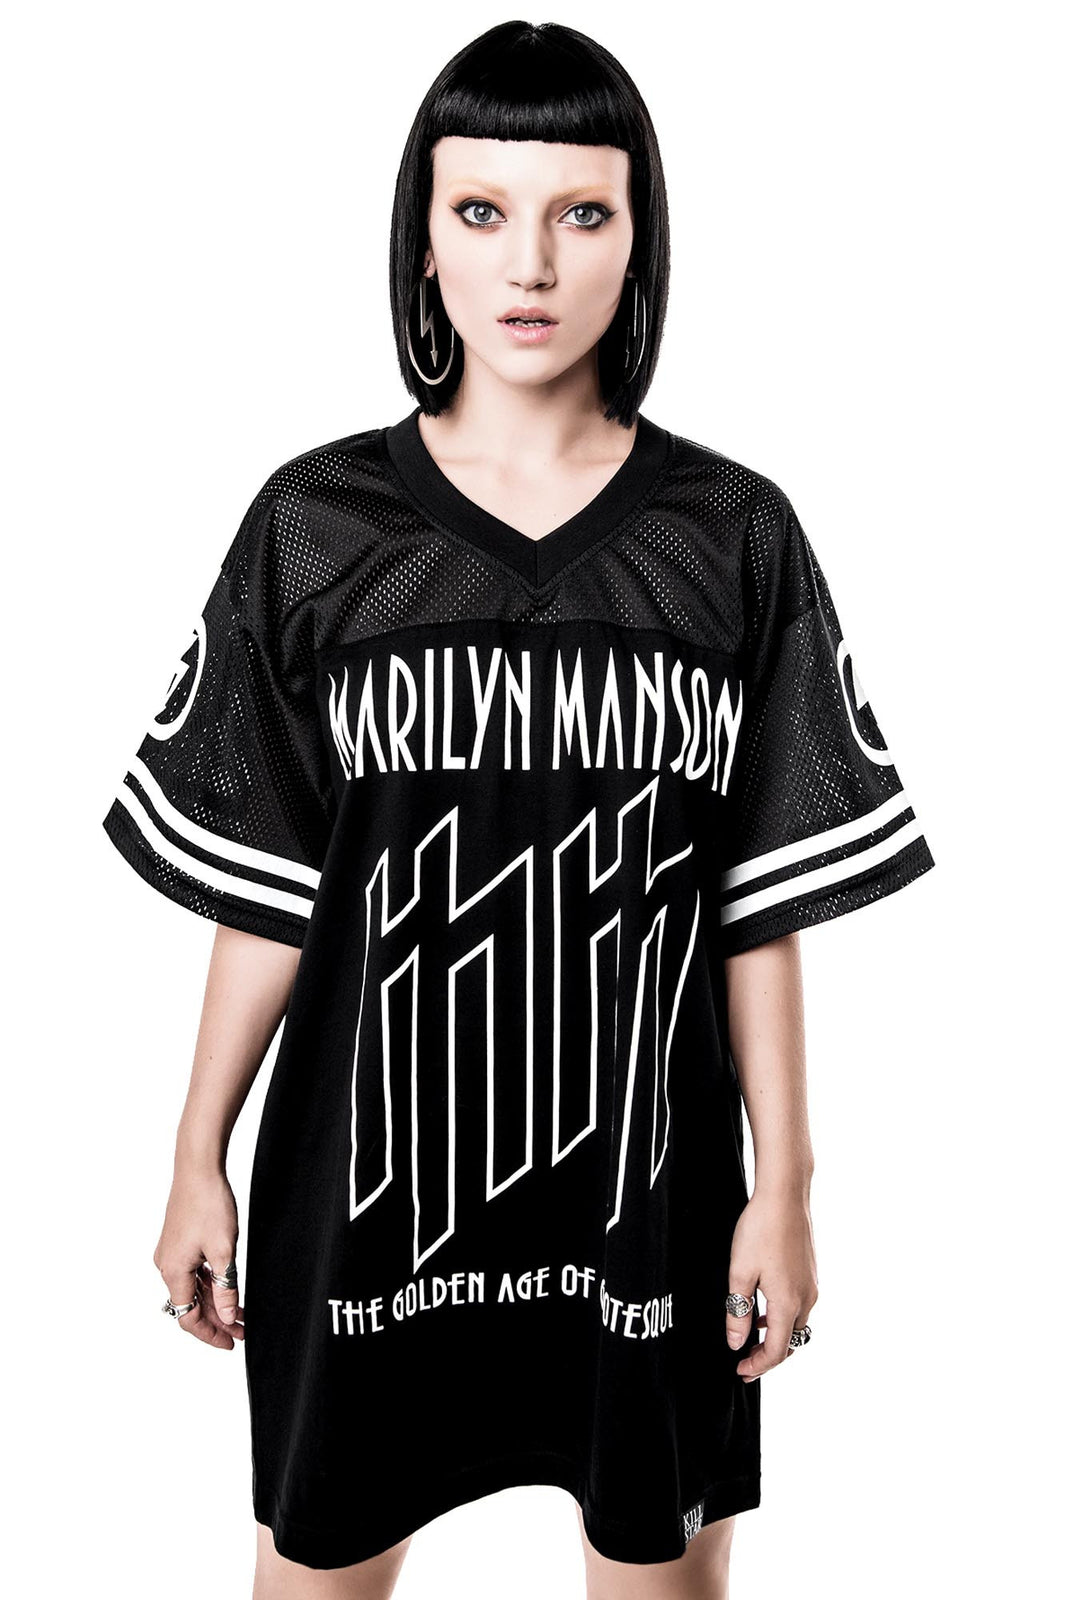 Woman in Ka-Boom Ka-Boom Hockey Jersey from Killstar x Marilyn Manson Clothing Line